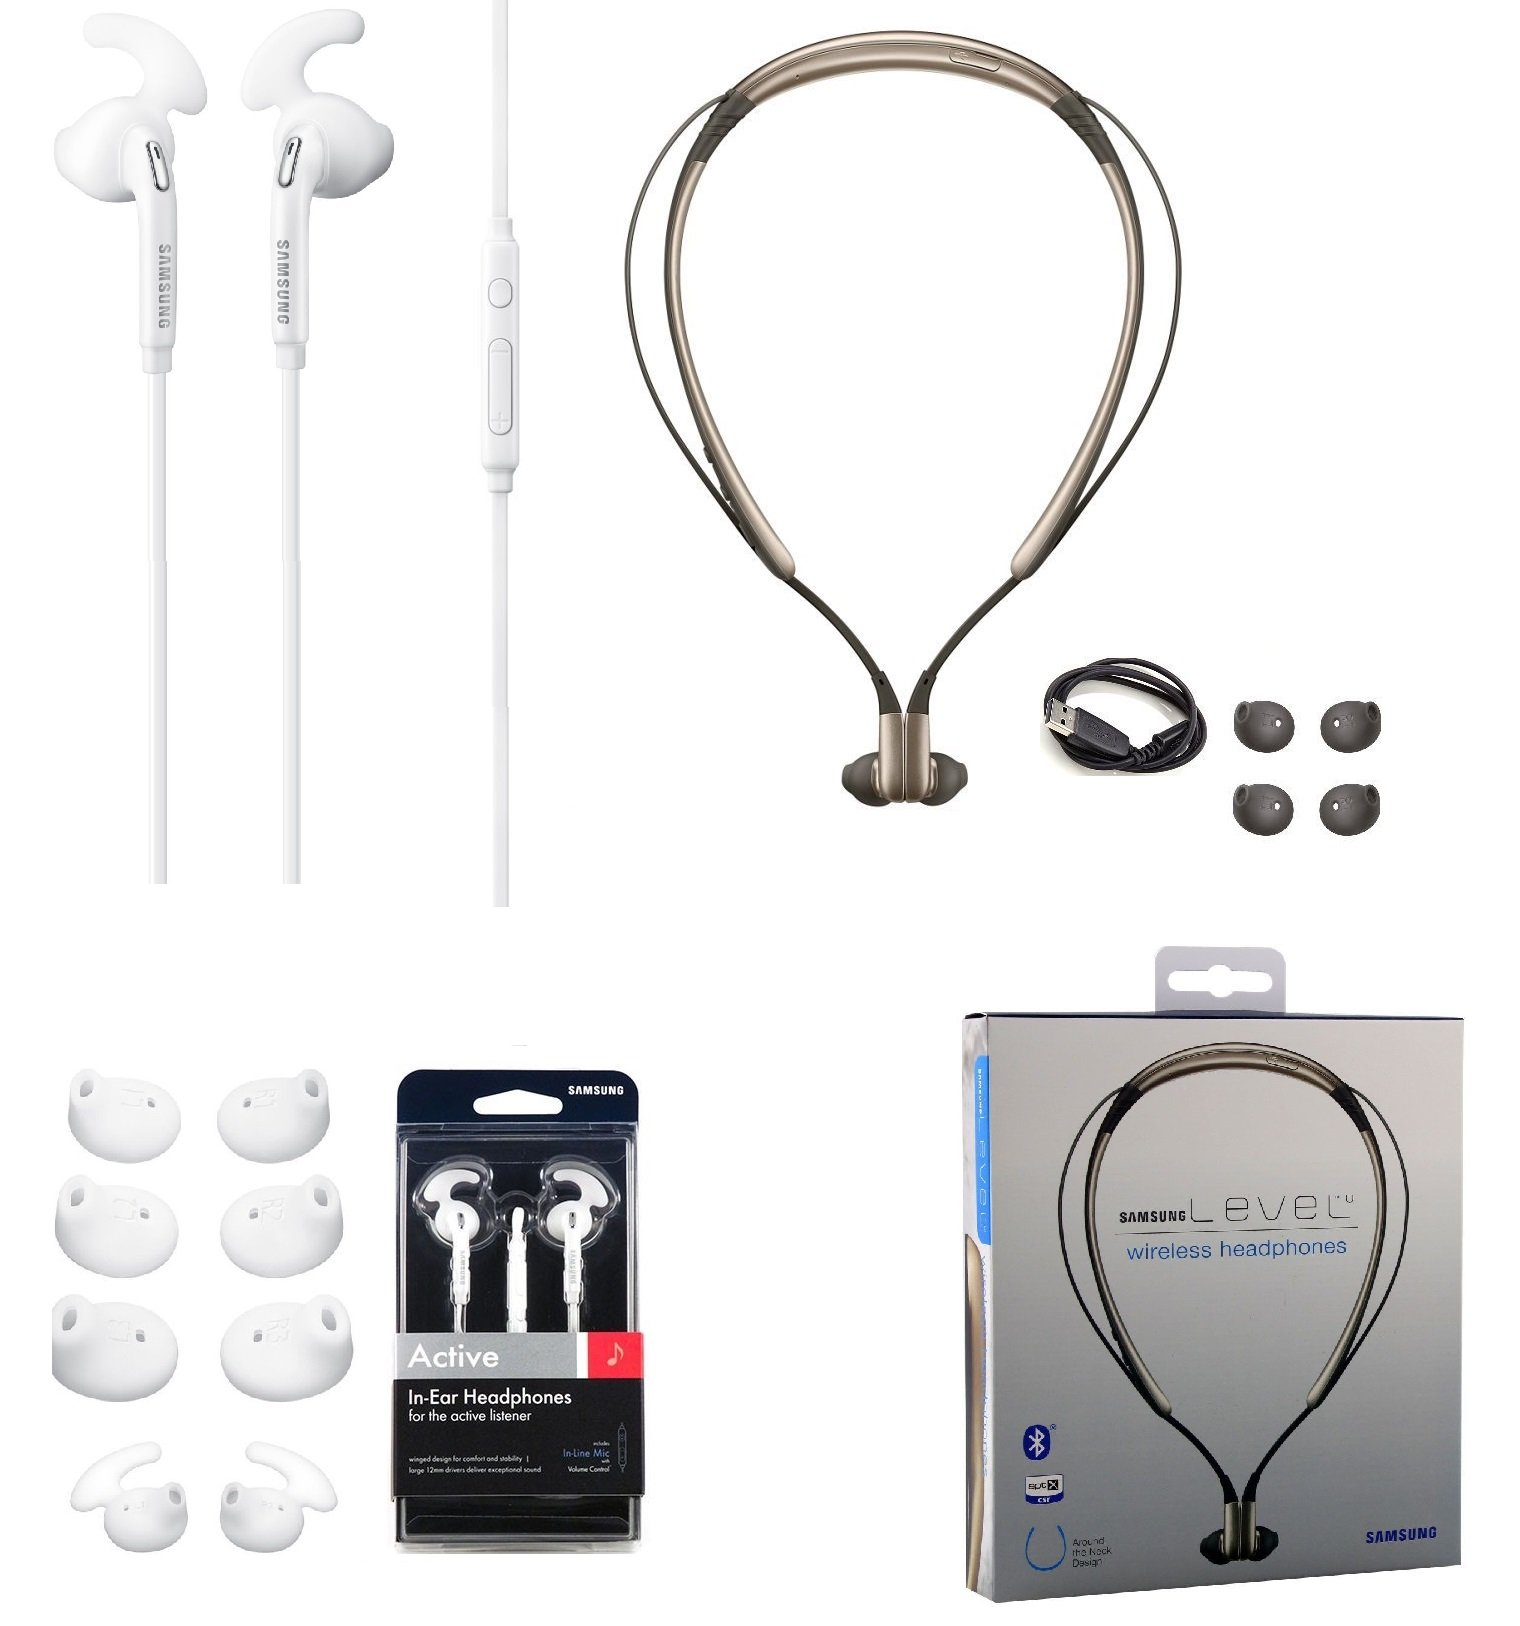 Combo Set Samsung Level U Bluetooth Headset Hd Sound With Samsung Active Headset 3 5mm Jack Universal With Extra Ear Gel Stylus In Retail Packing On Galleon Philippines